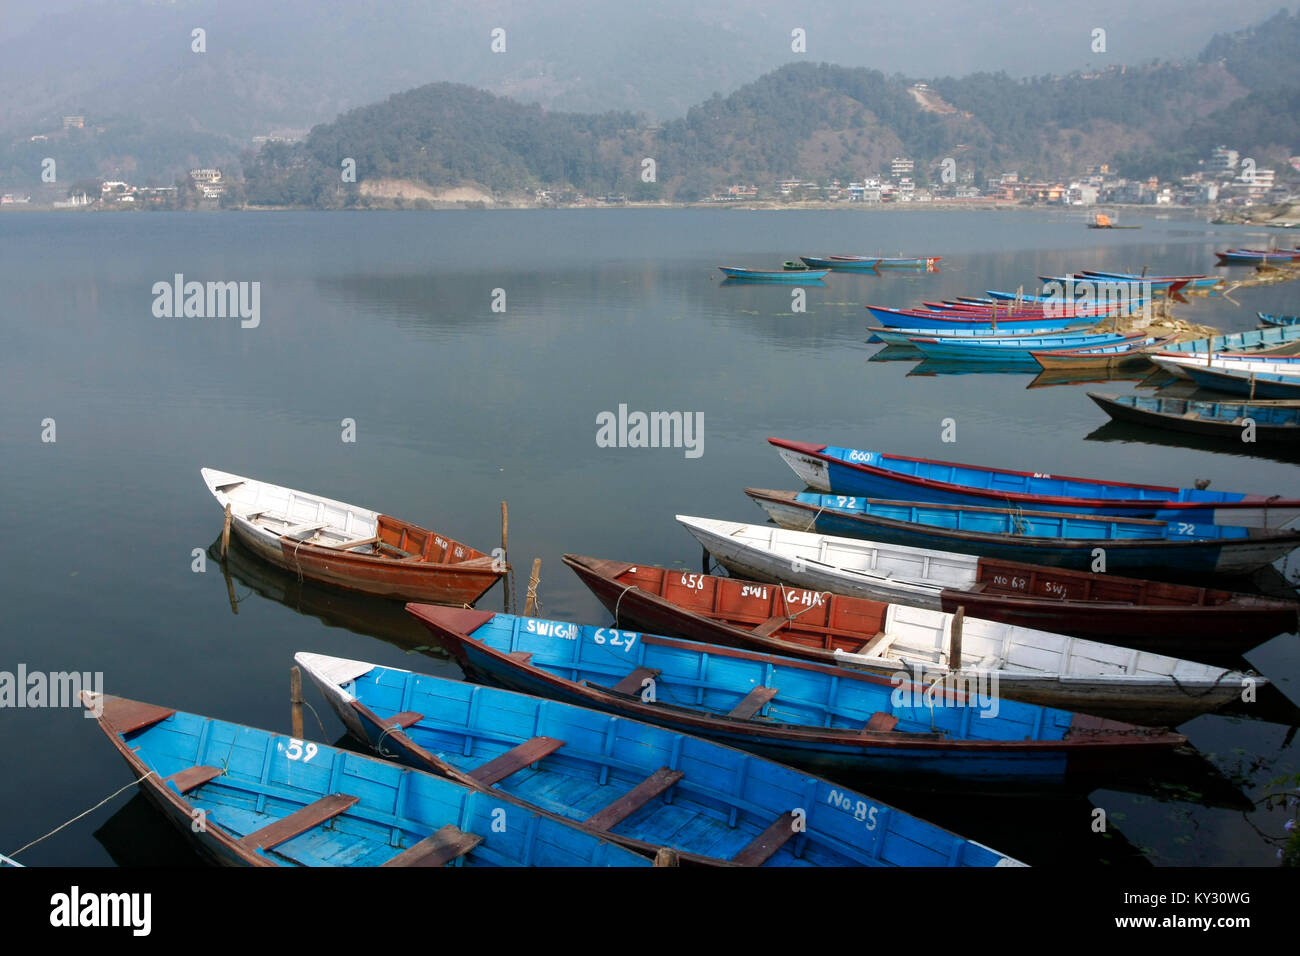 Colorful wooden boats in Fewa lake Pokhara. - Stock Image